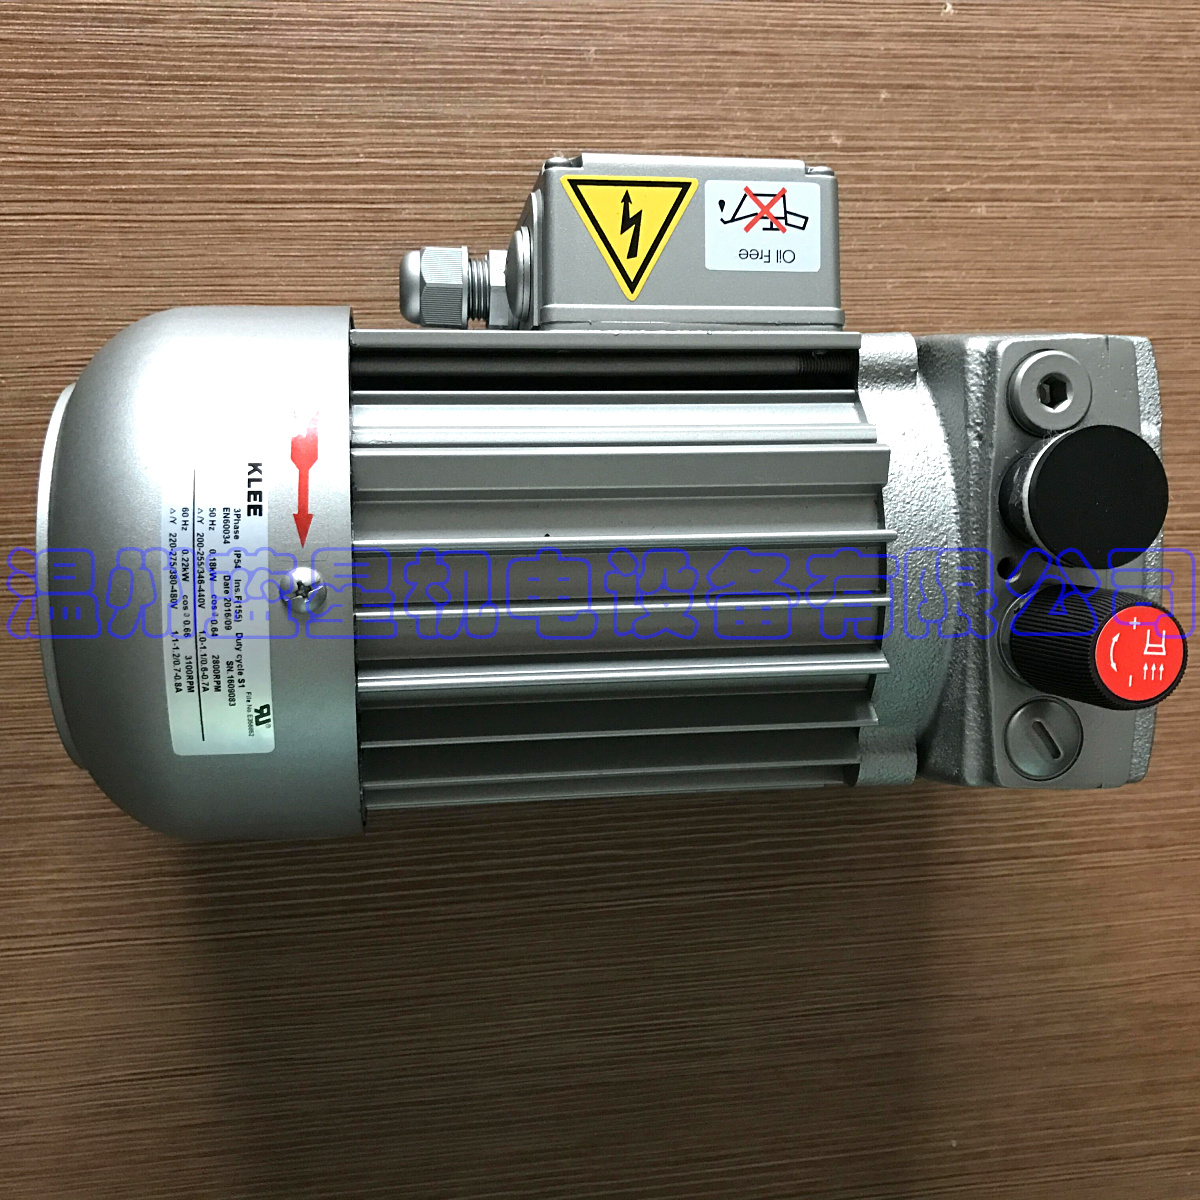 Kbv-408 oil-free vacuum pump can replace  VT4.8 Max flow: 7.6m3/h, max  vacuum 150mbar, voltage AC380V 3-phase powerKbv-408 oil-free vacuum pump can replace  VT4.8 Max flow: 7.6m3/h, max  vacuum 150mbar, voltage AC380V 3-phase power